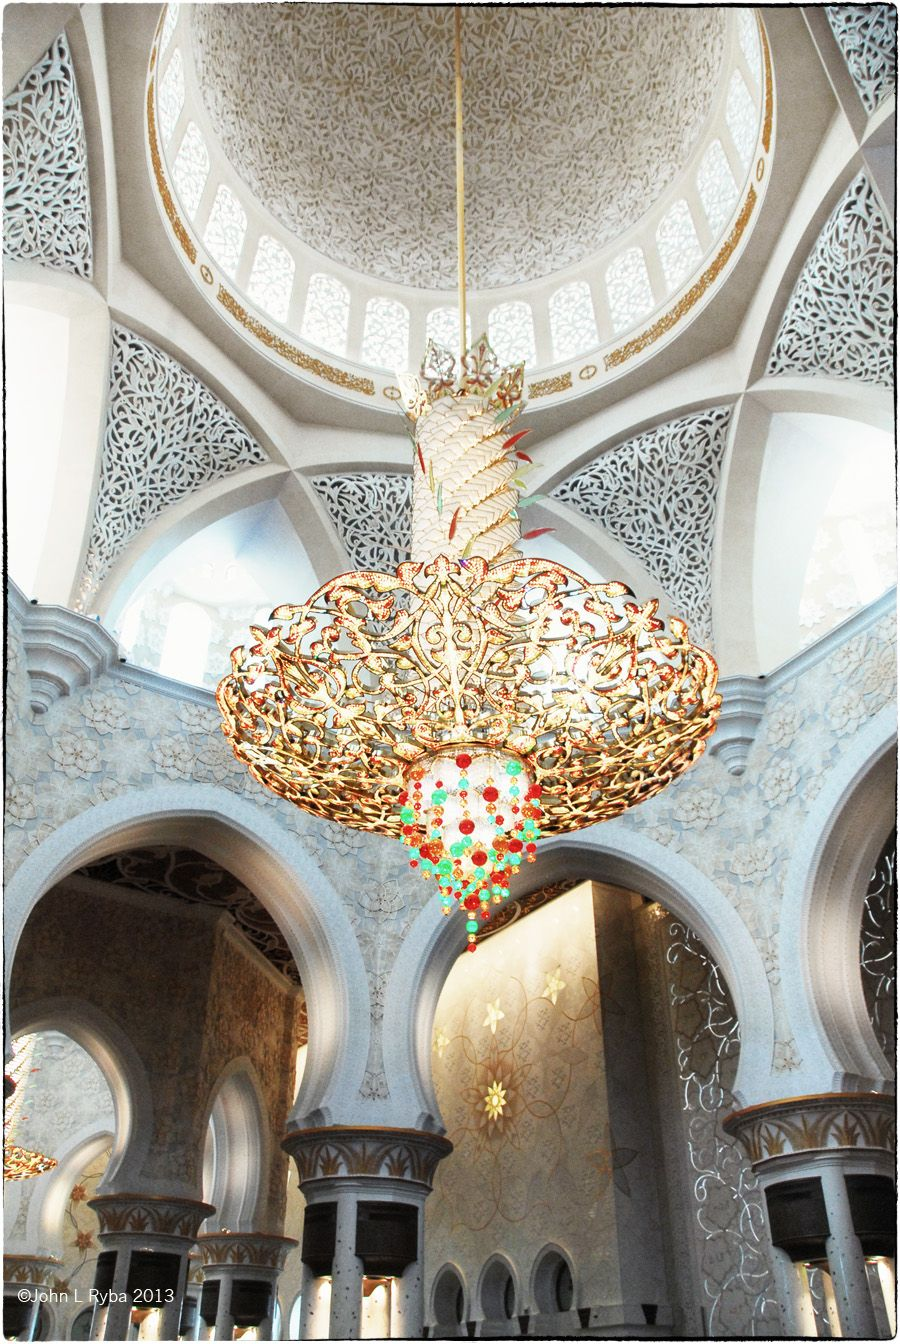 Sheikh zayed grand mosque in abu dhabi architectural elements sheikh zayed grand mosque in abu dhabi architectural elements worlds largest chandelier arubaitofo Image collections